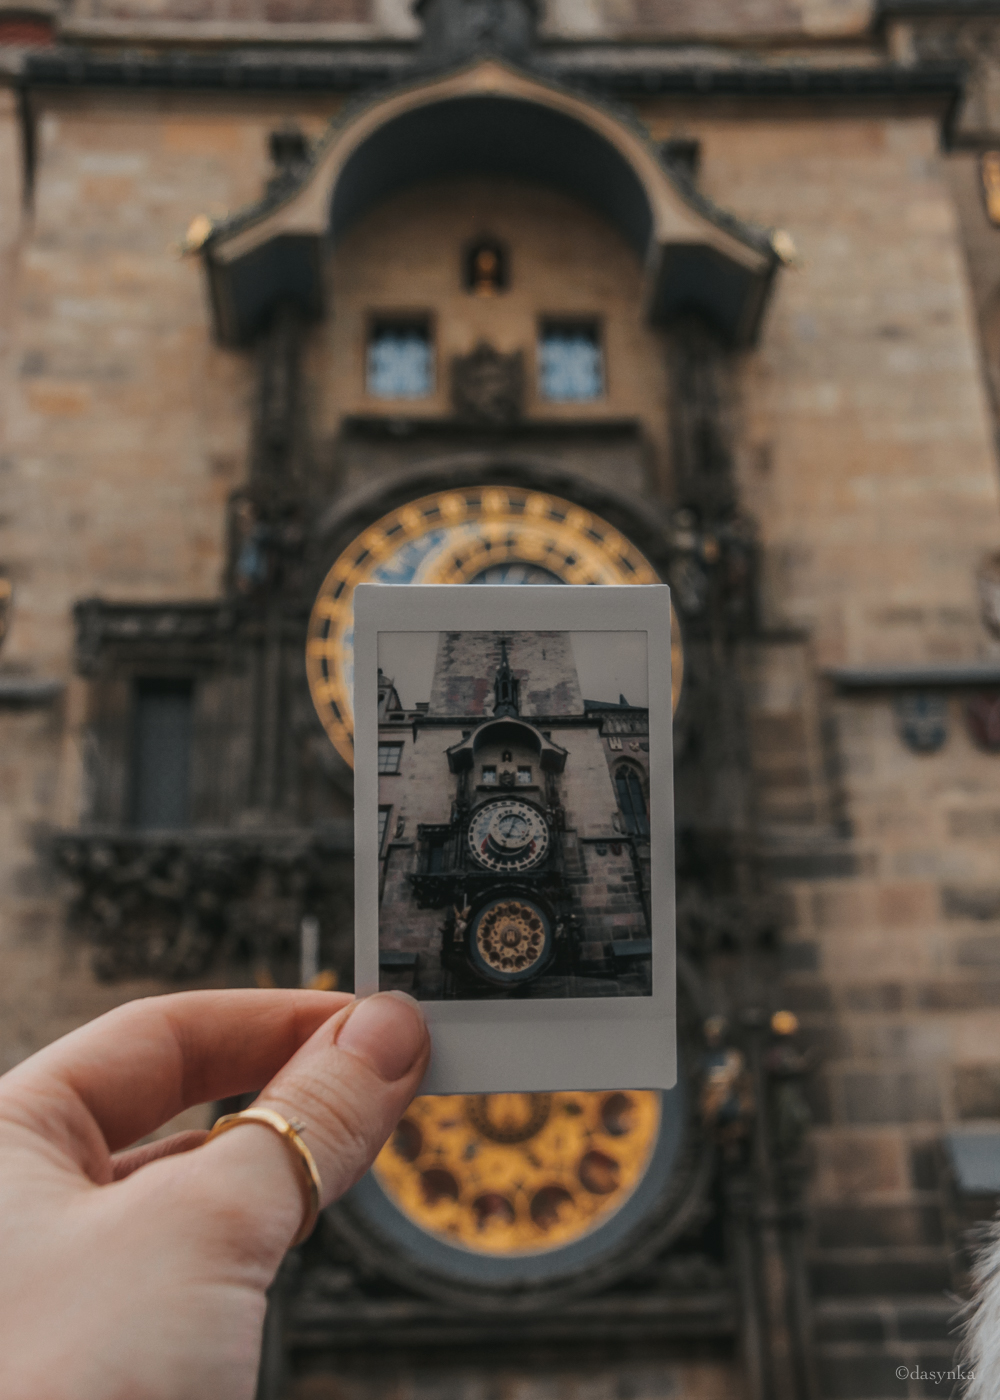 dasynka-fashion-blog-blogger-influencer-inspiration-shooting-globettrotter-travel-traveller-instagram-lifestyle-italy-ideas-italian-polaroids-polaroid-fujifilm-instax-90-8-worldmap-planisfero-mappa-mondo-pin-memories-photographs-vintage-print-prague-clock-tower